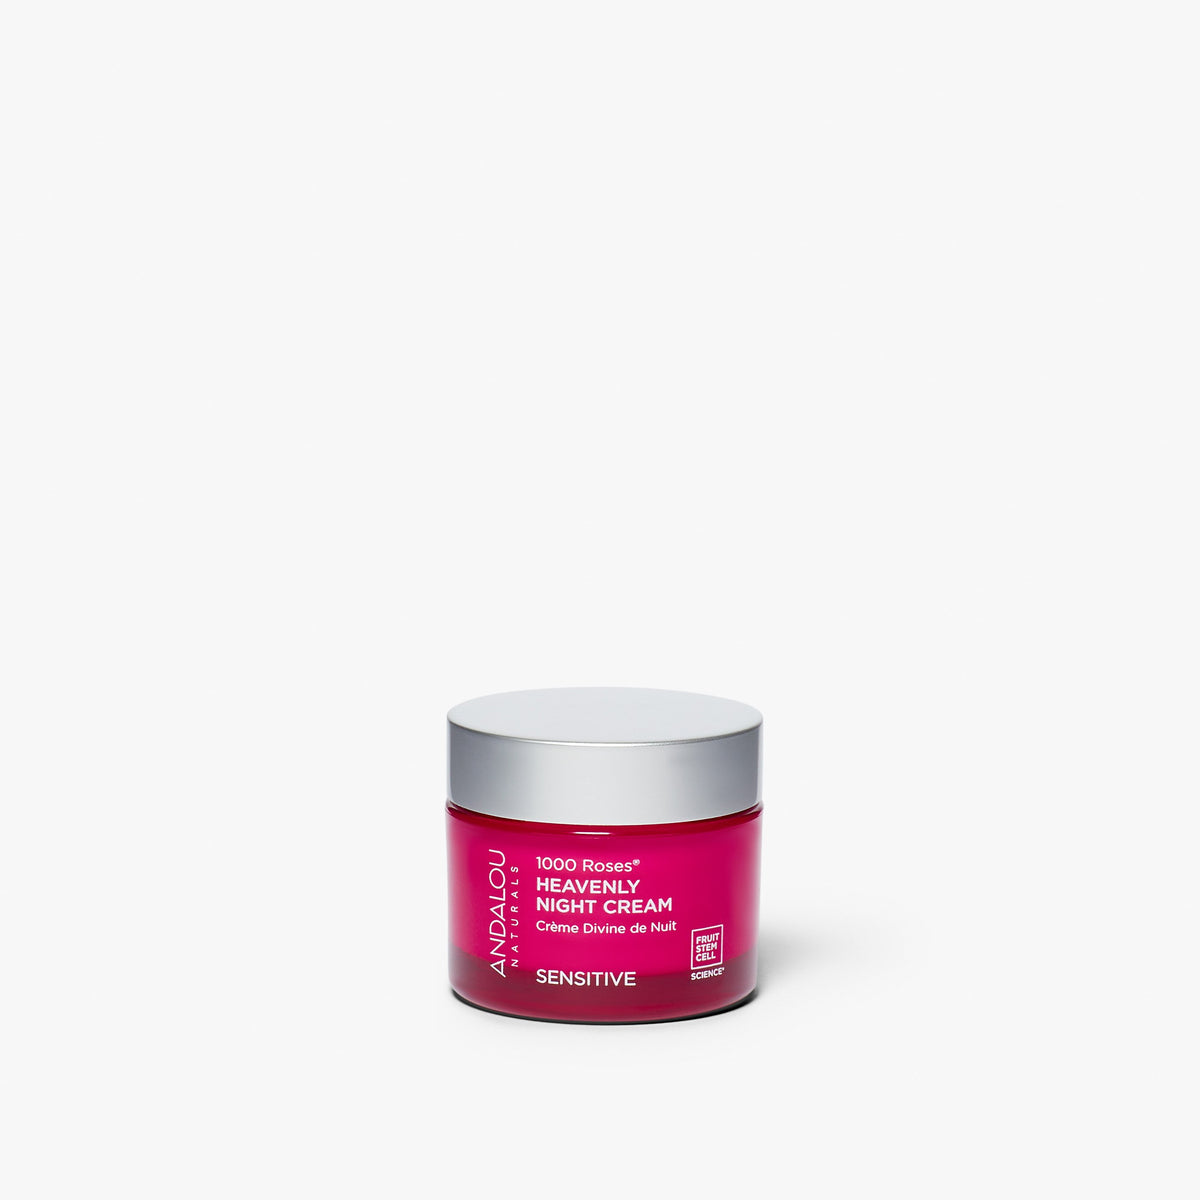 Sensitive 1000 Roses Heavenly Night Cream - Andalou Naturals US